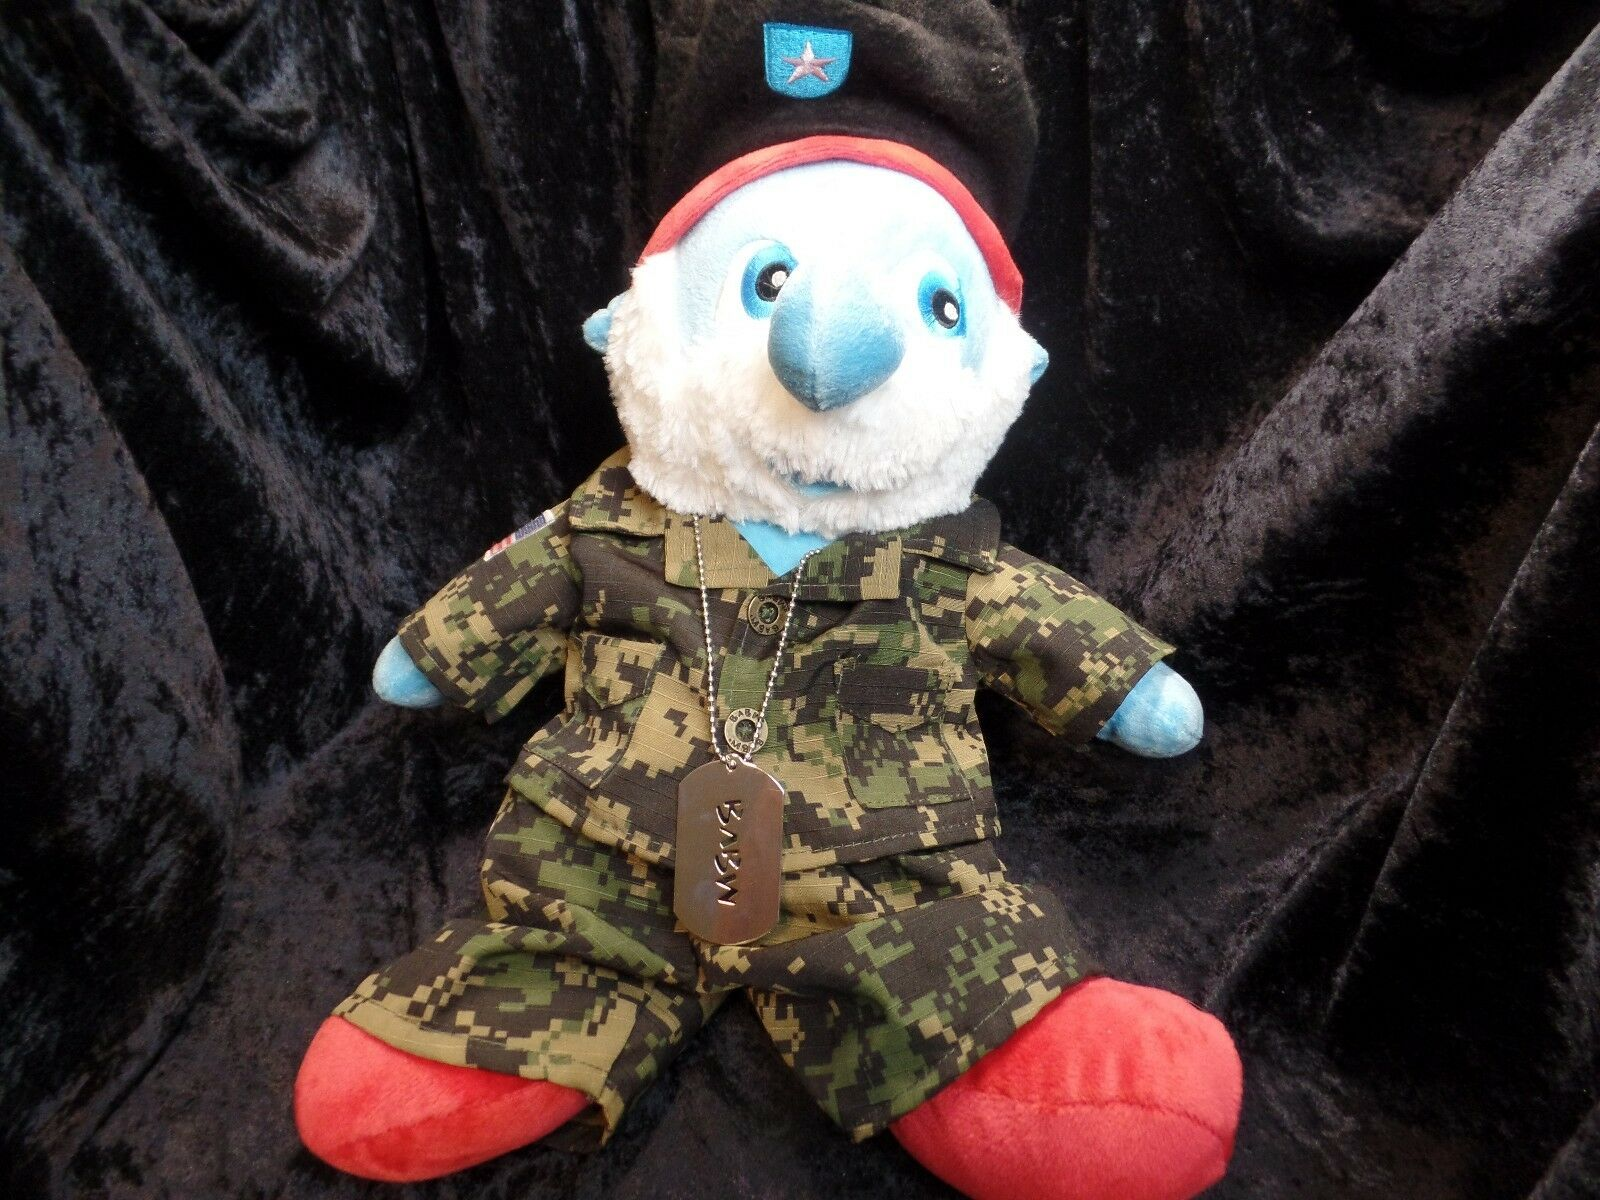 Papa Papa Papa Smurf Plush From Build-A-Bear Workshop Stuffed With Hugs And Good Wishes  20a1b0